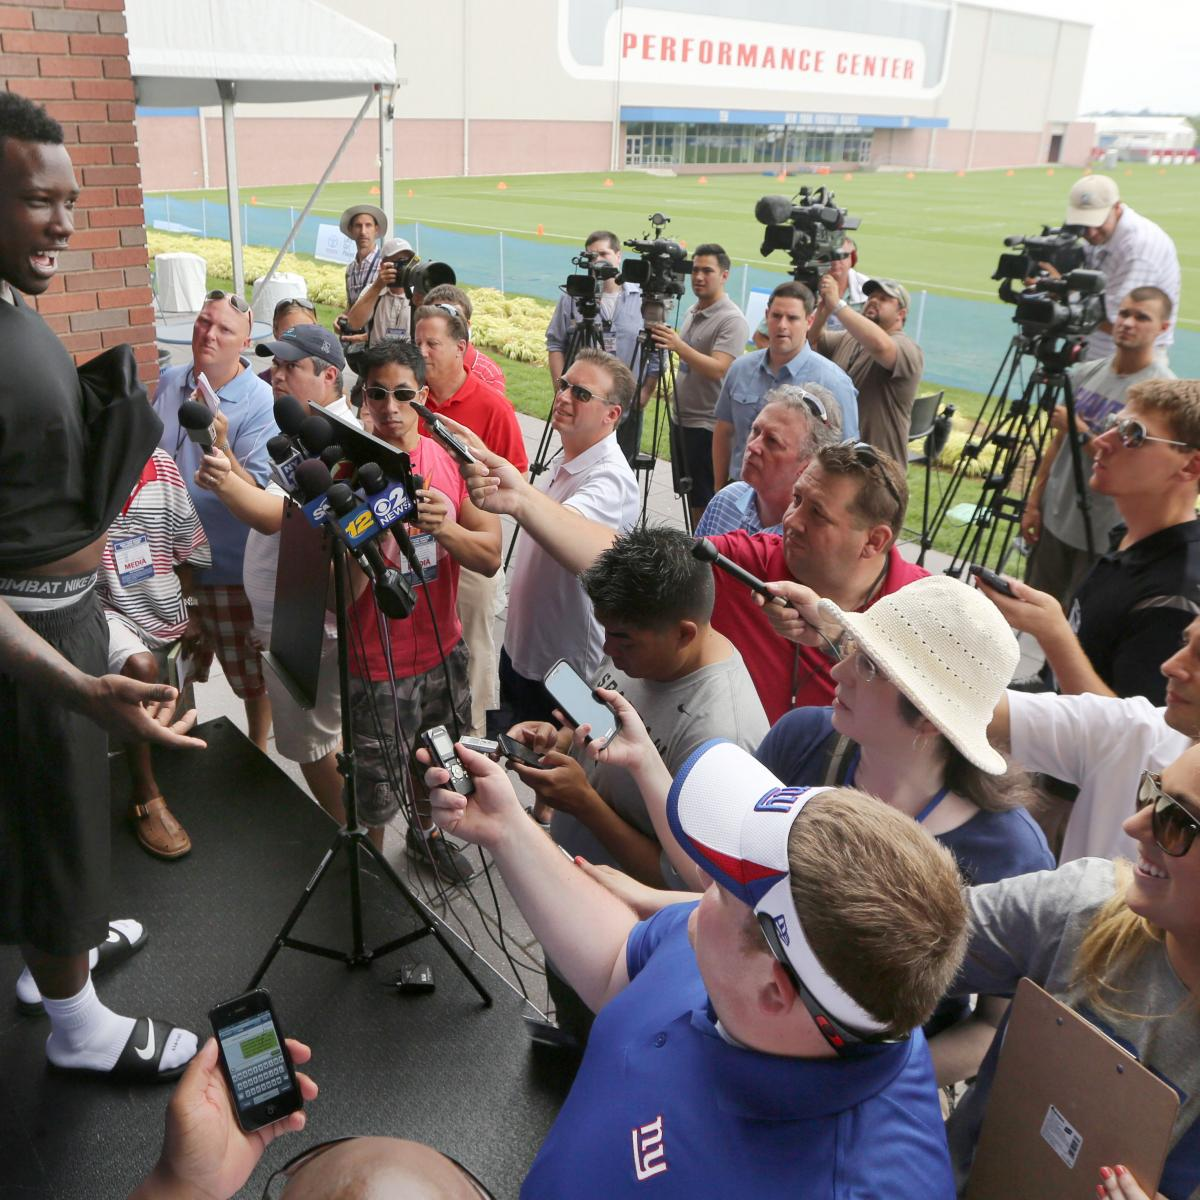 New York Giants: All Talk And No Play Makes Jason Pierre